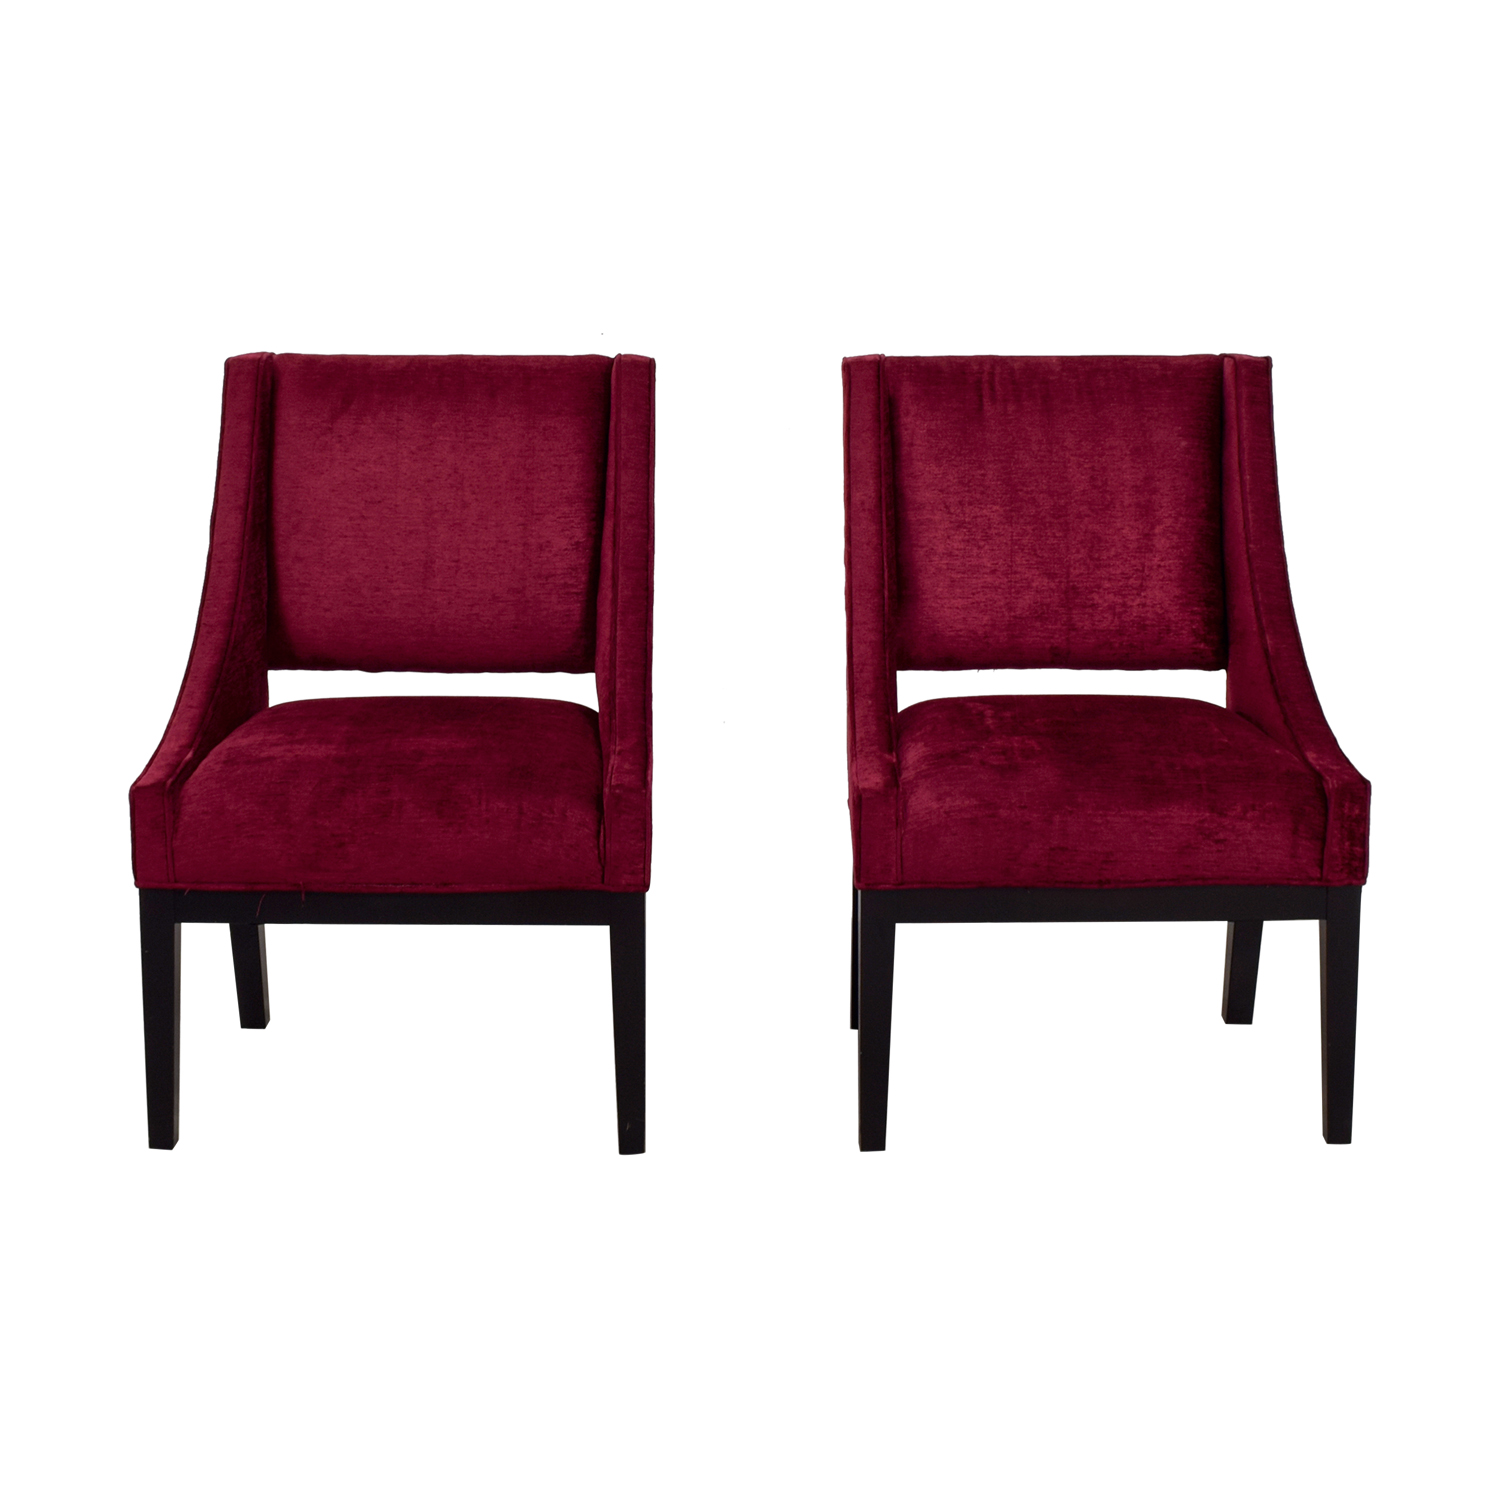 Modern Interiors Modern Interiors Pink Upholstered Accent Chairs discount